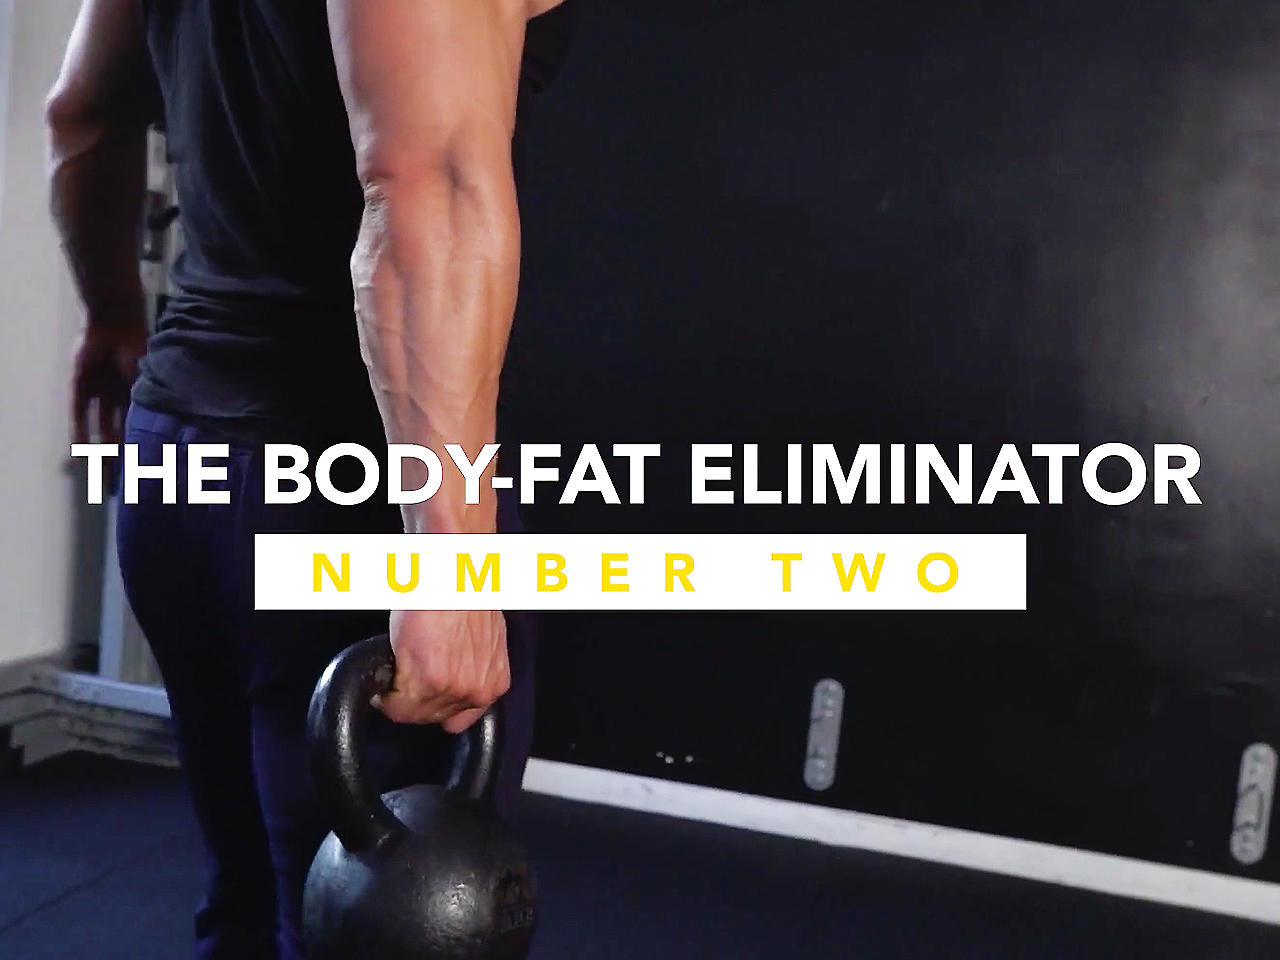 The Body-Fat Eliminator Workout #2: The 4-move circuit to lean out